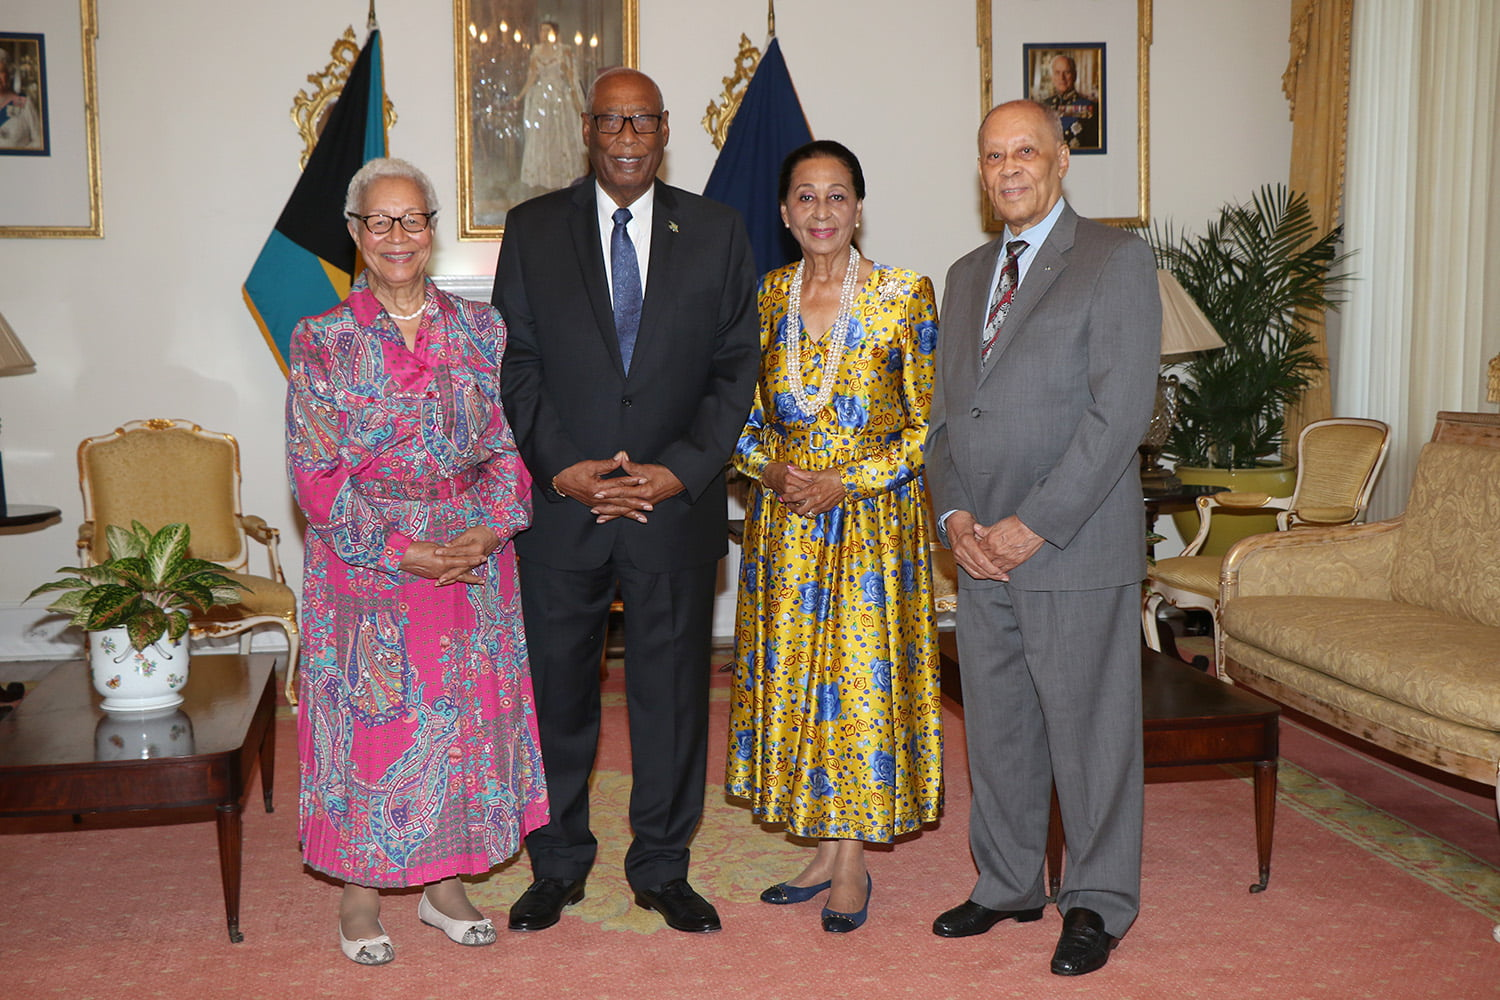 Governor General hosts luncheon in honour of former governors general